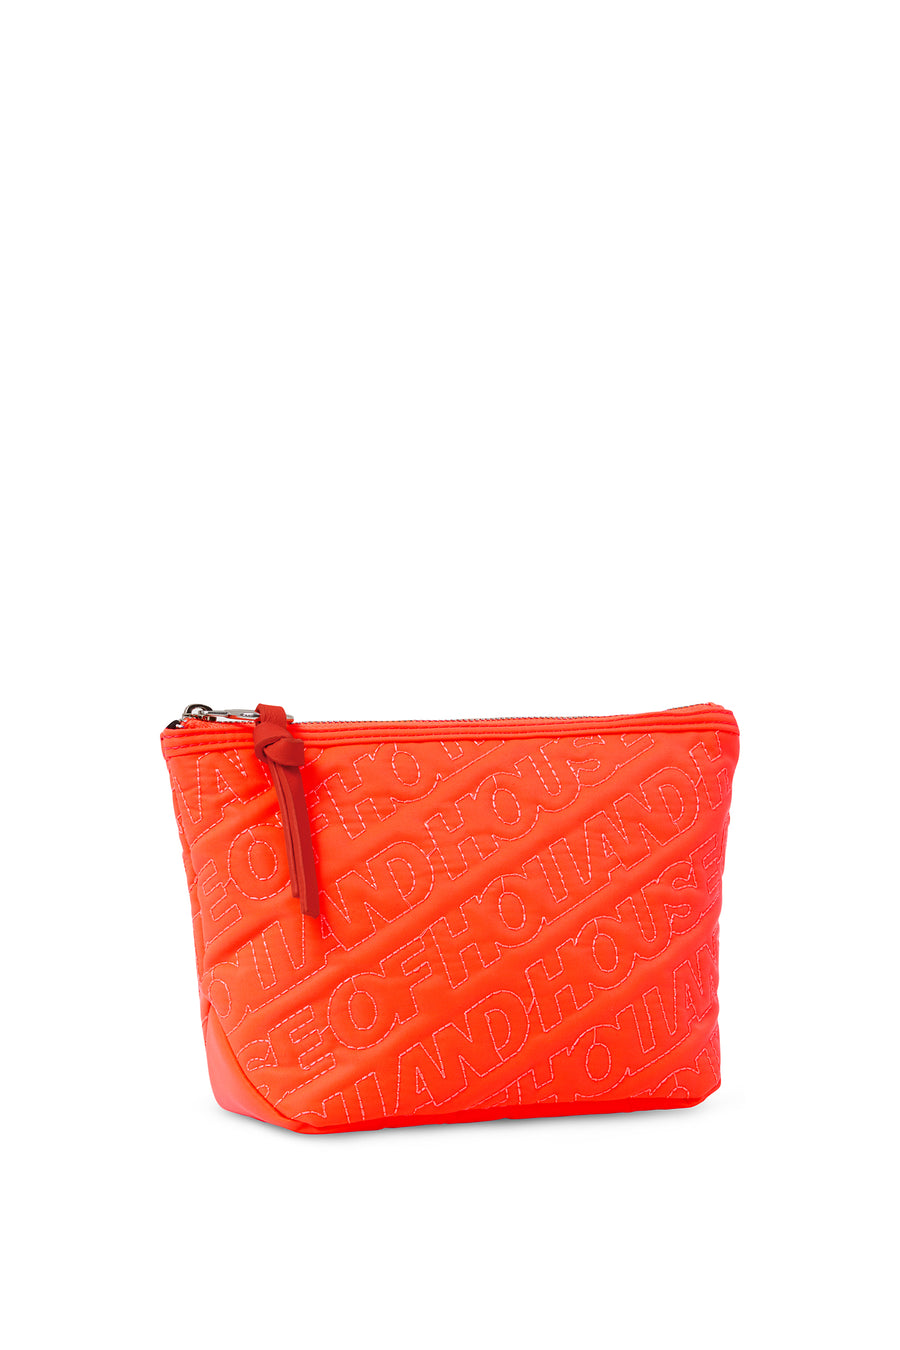 'HOH' Neon Orange Embroided Grab Bag